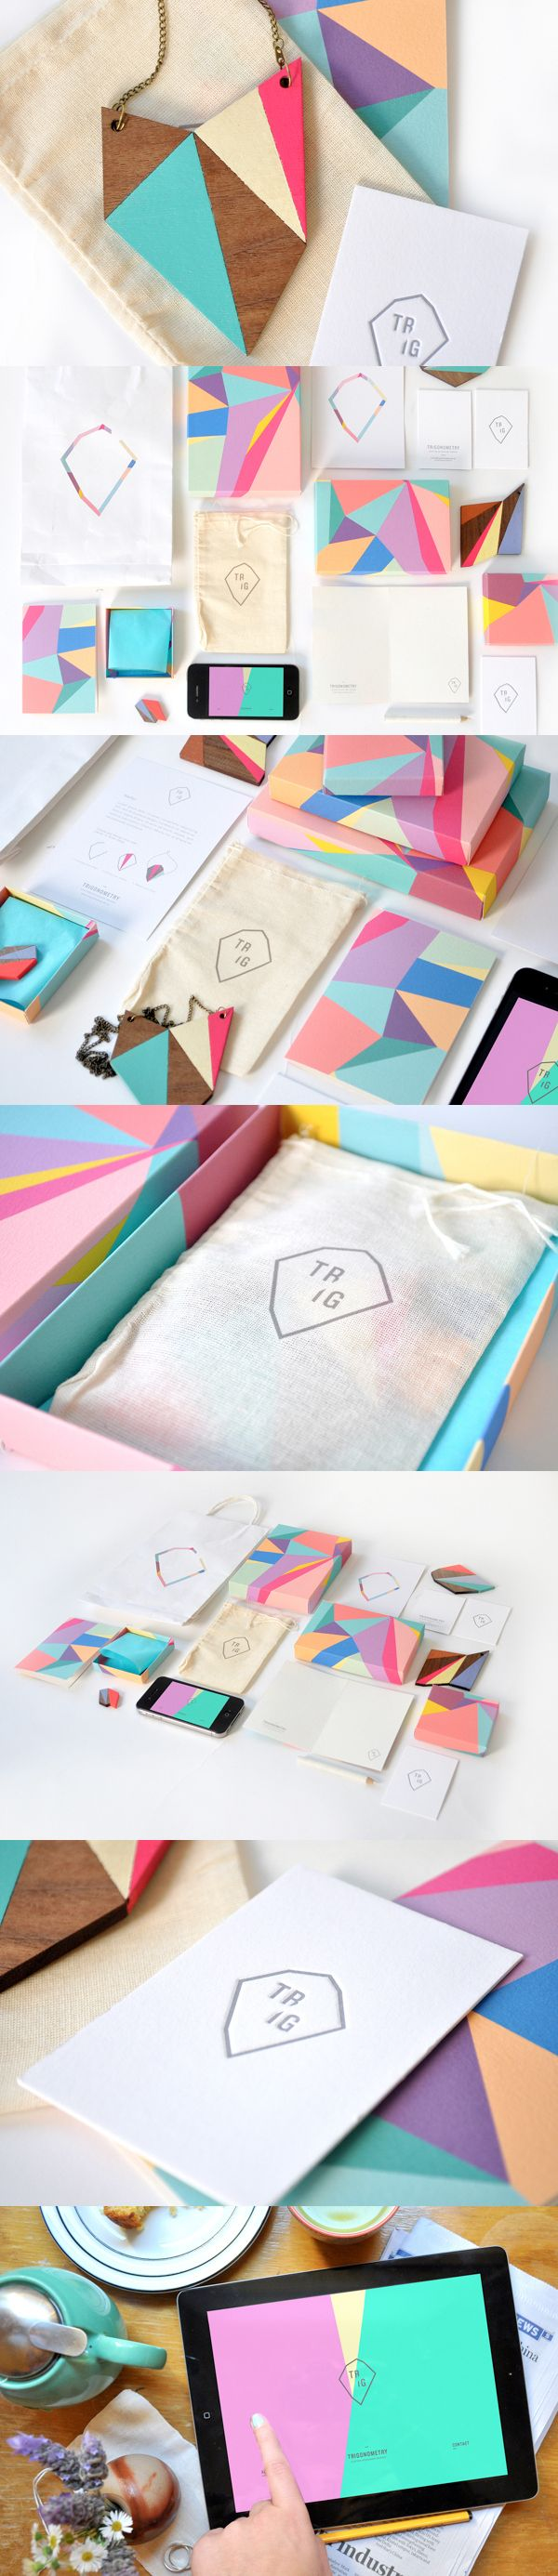 Colourful, geometric branding & packaging design for Trig app, which lets customers design their own personalized jewelry - by Sydney-based Olivia King https://www.behance.net/gallery/8511731/Trig